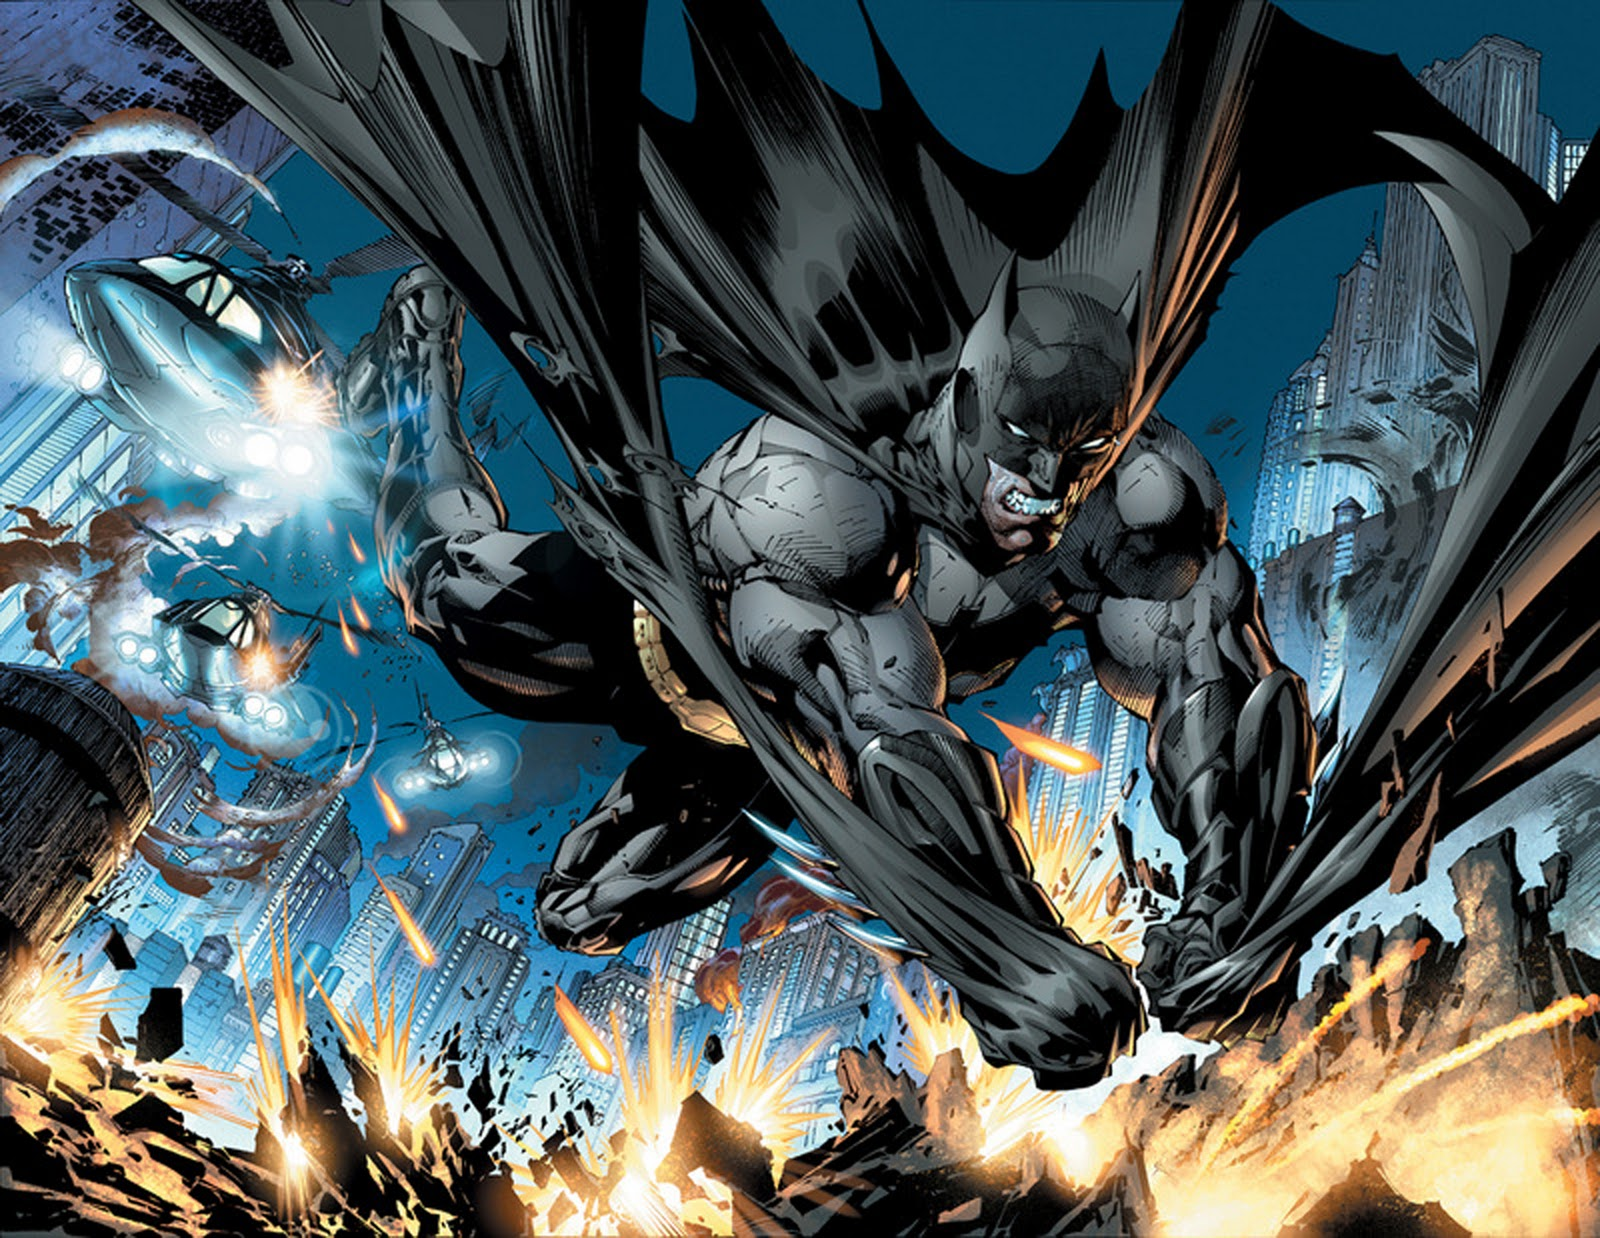 Chronicle S Max Landis Explains How Batman Could Take Down All Of